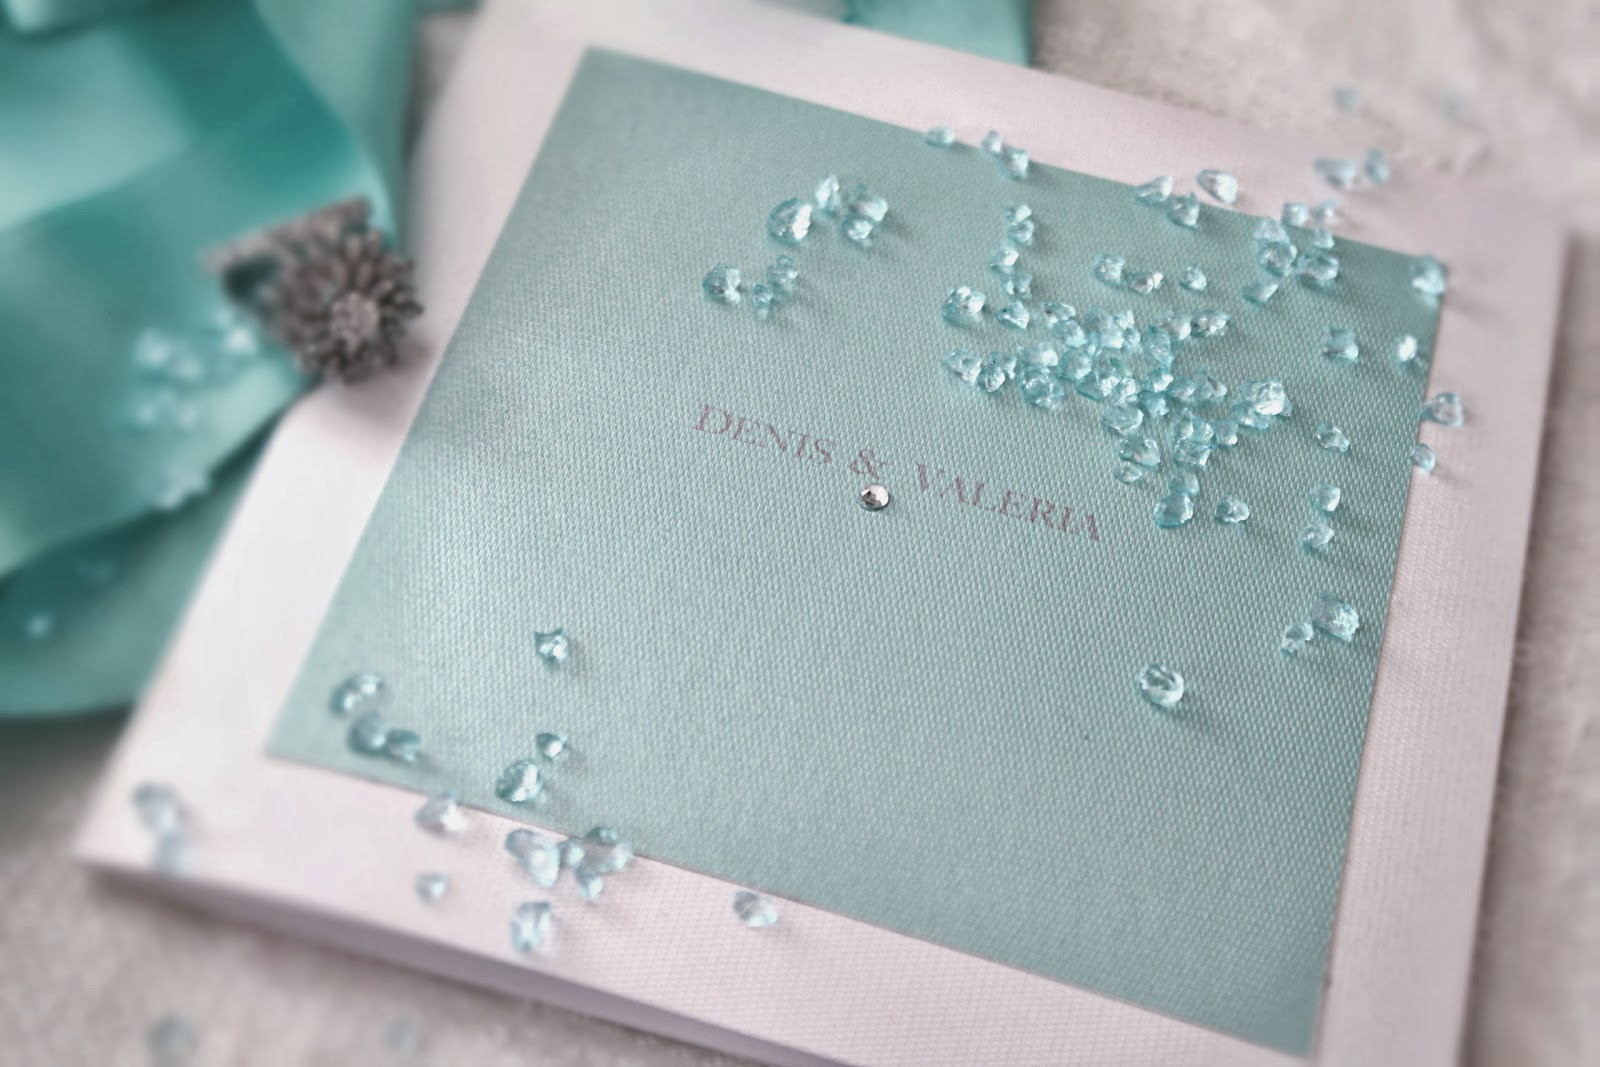 Matrimonio In Tiffany : Lia partecipazioni co matrimonio tiffany blue